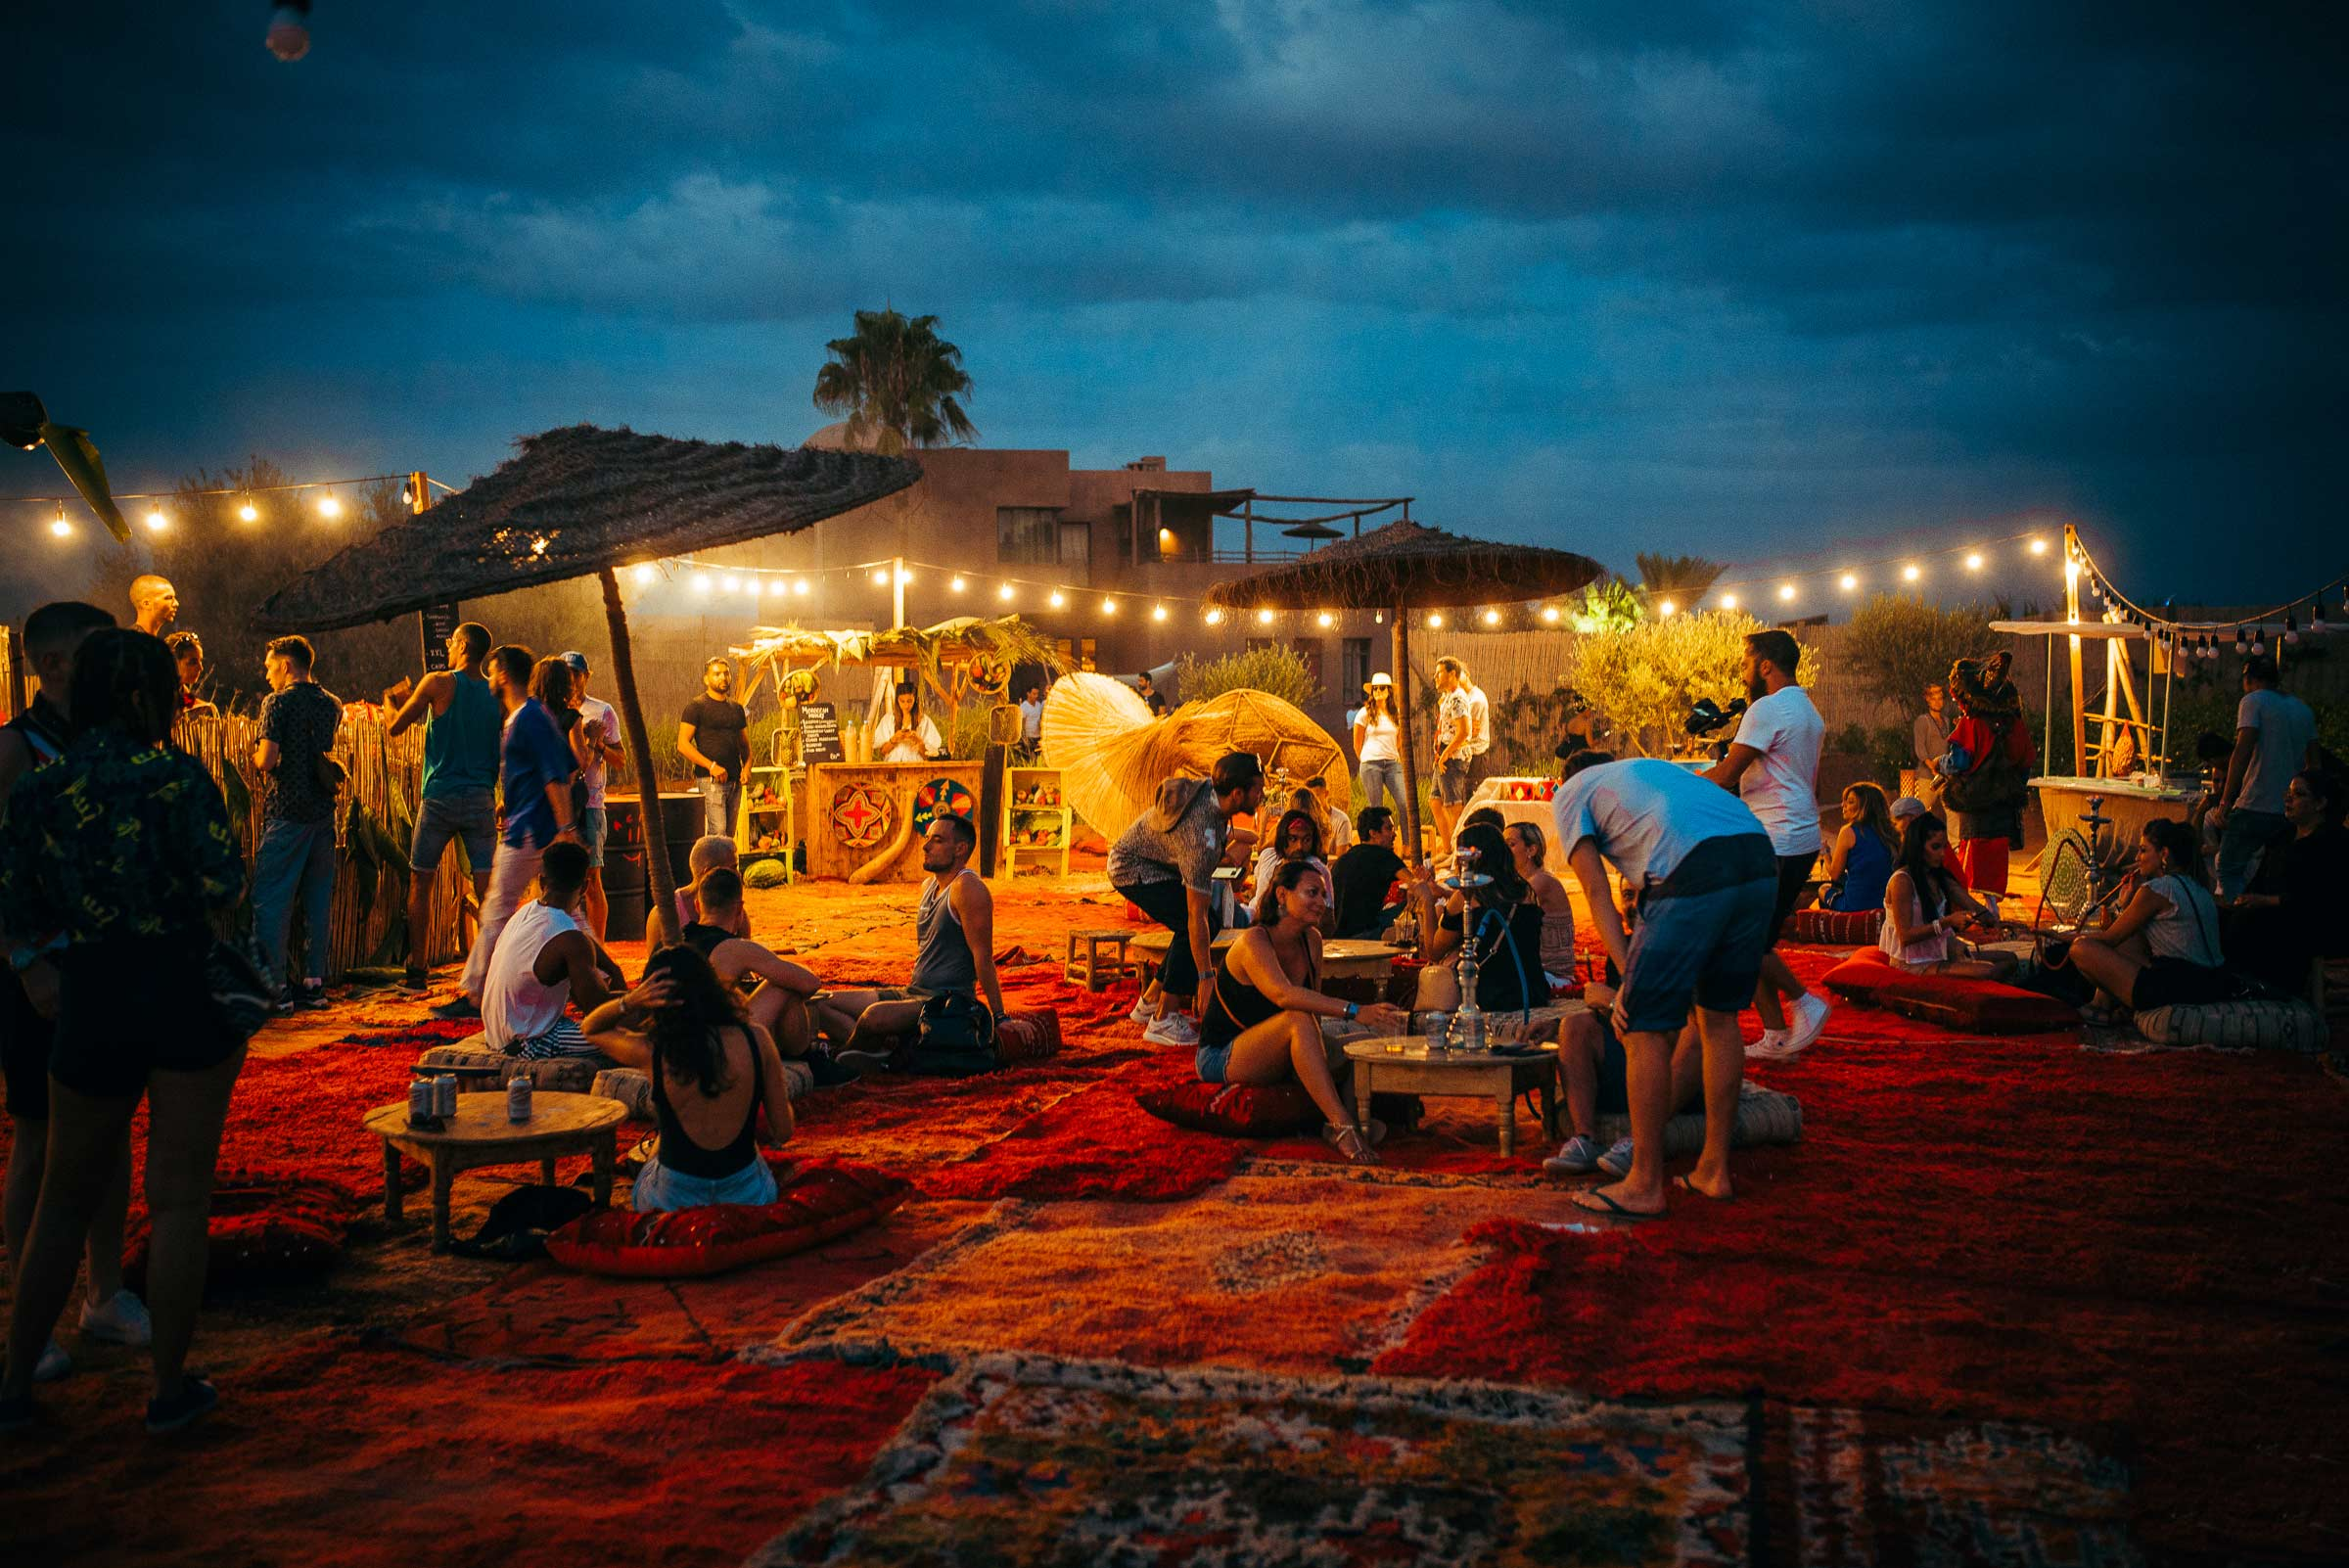 OASIS: A Boutique Festival You Want to Check out! [Marrakech]